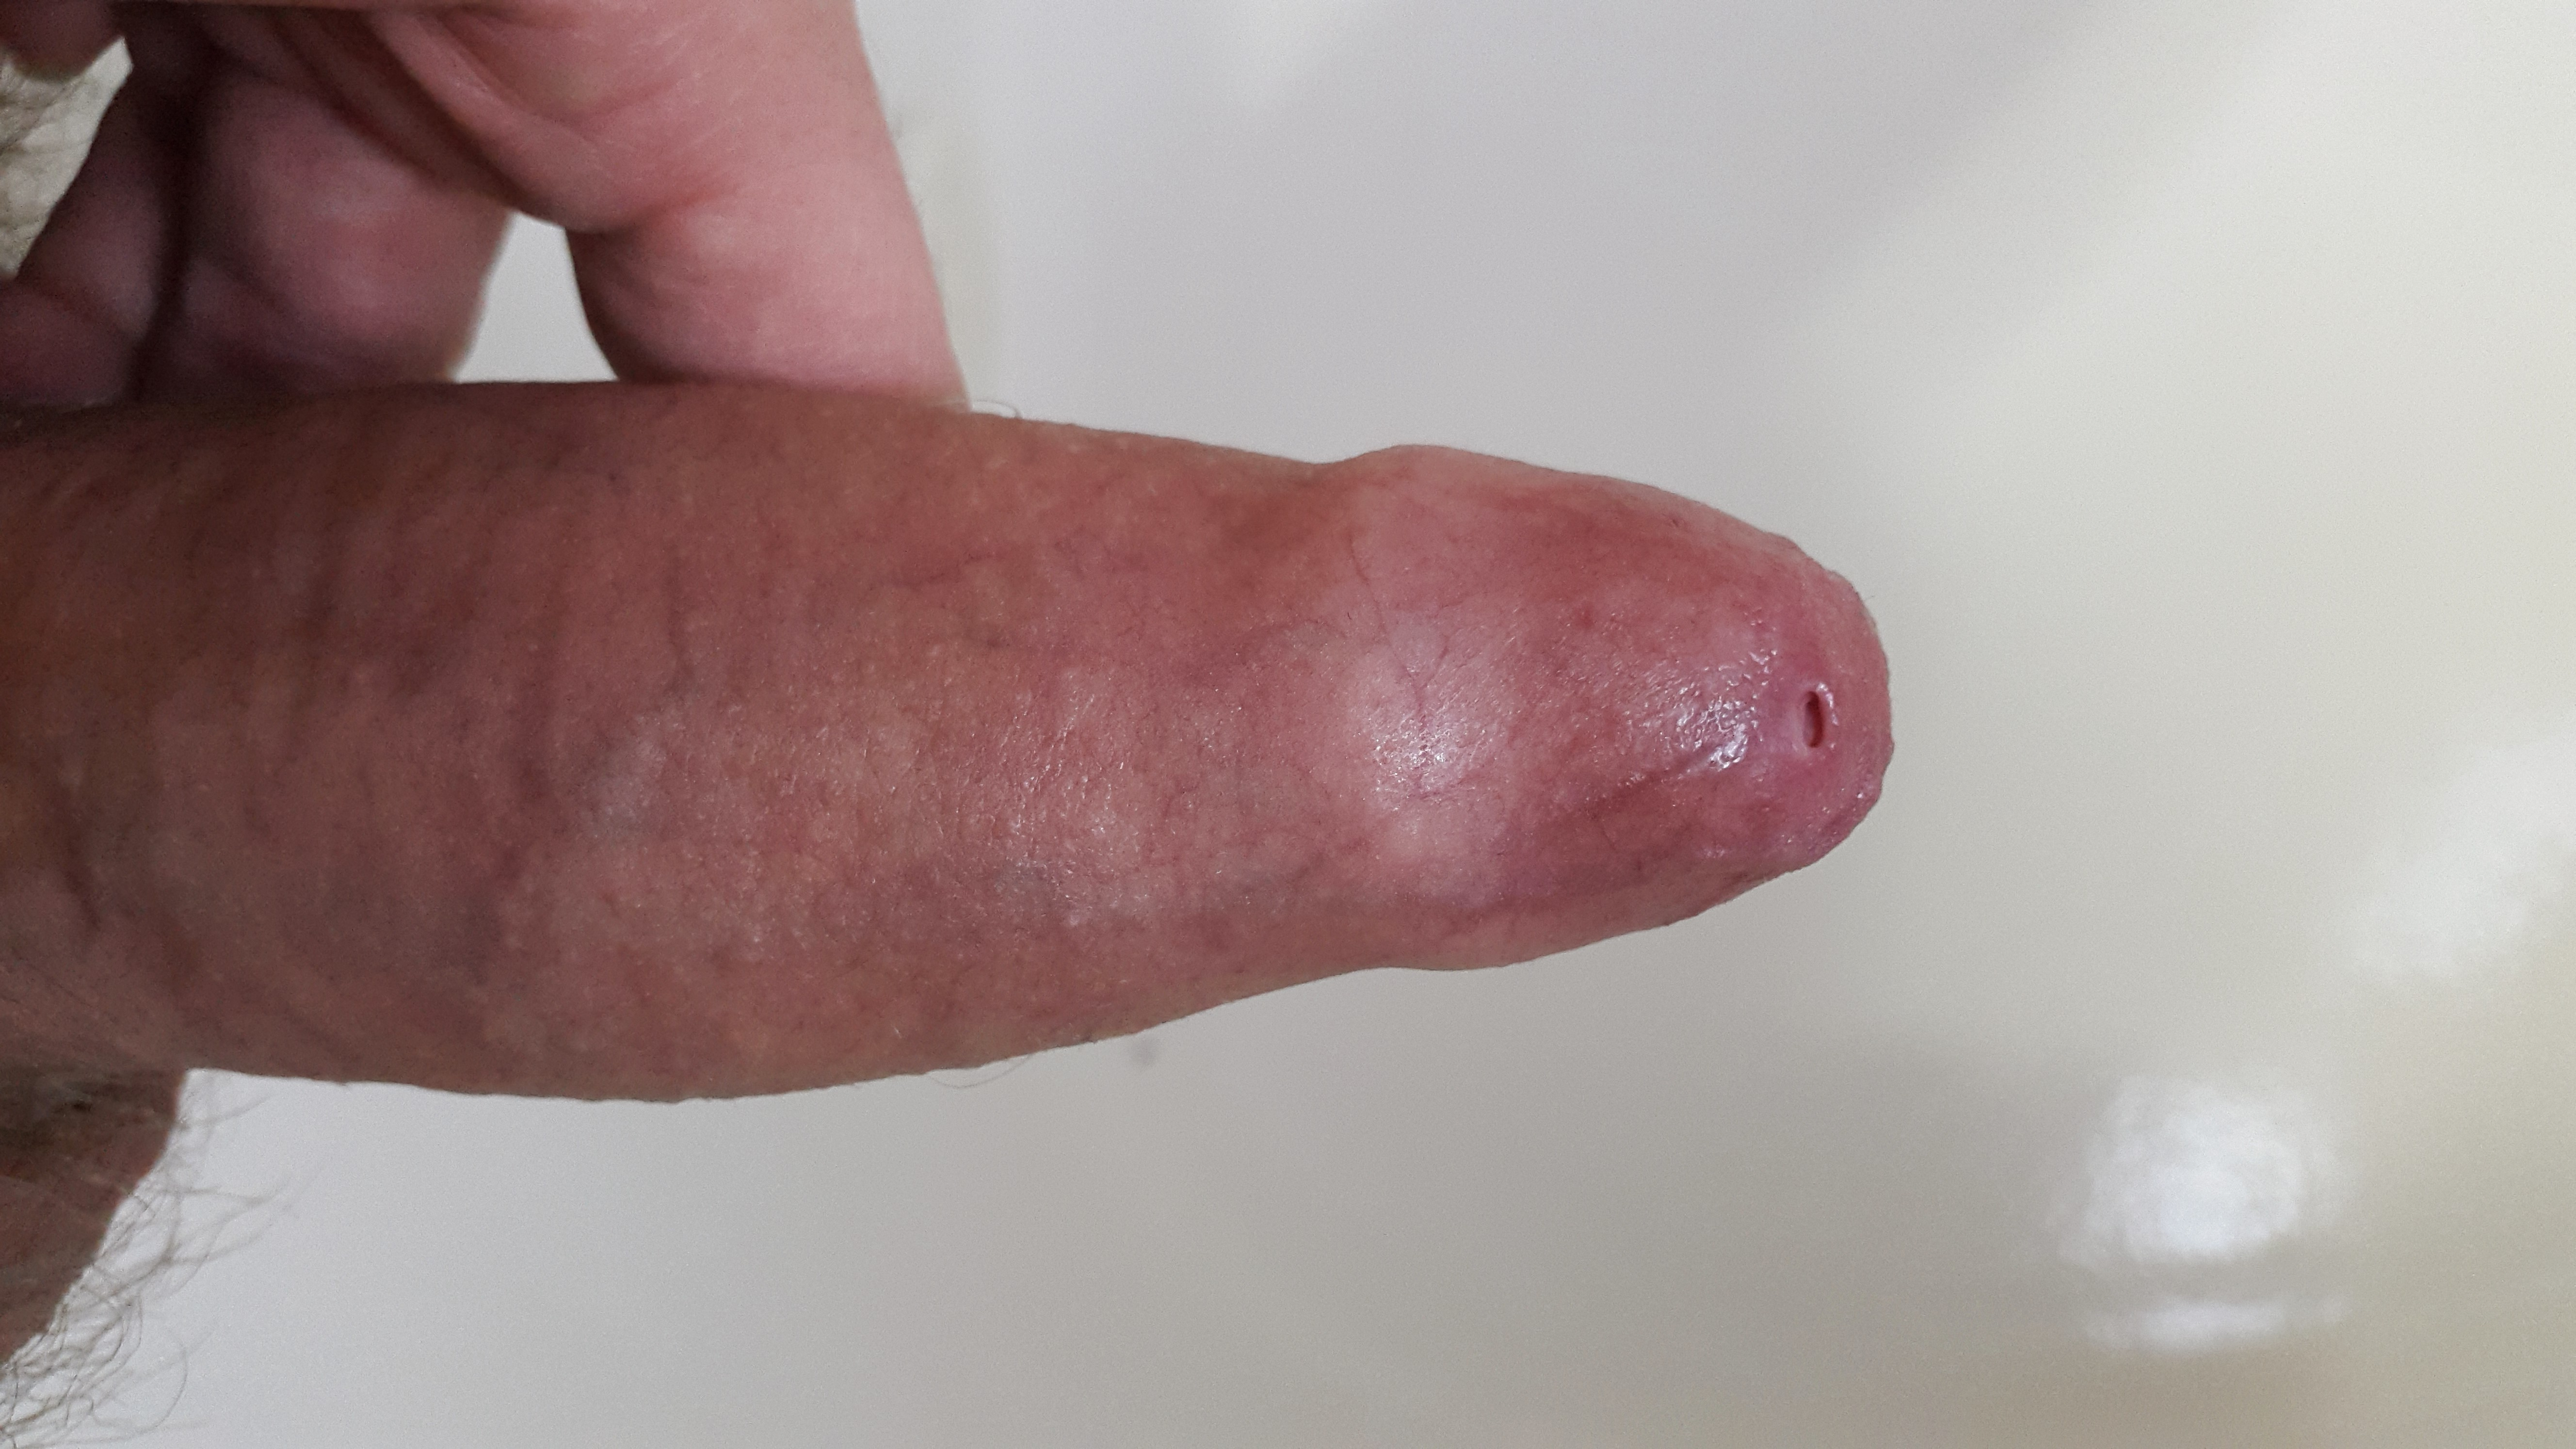 Erect penis with pinhole phimosis